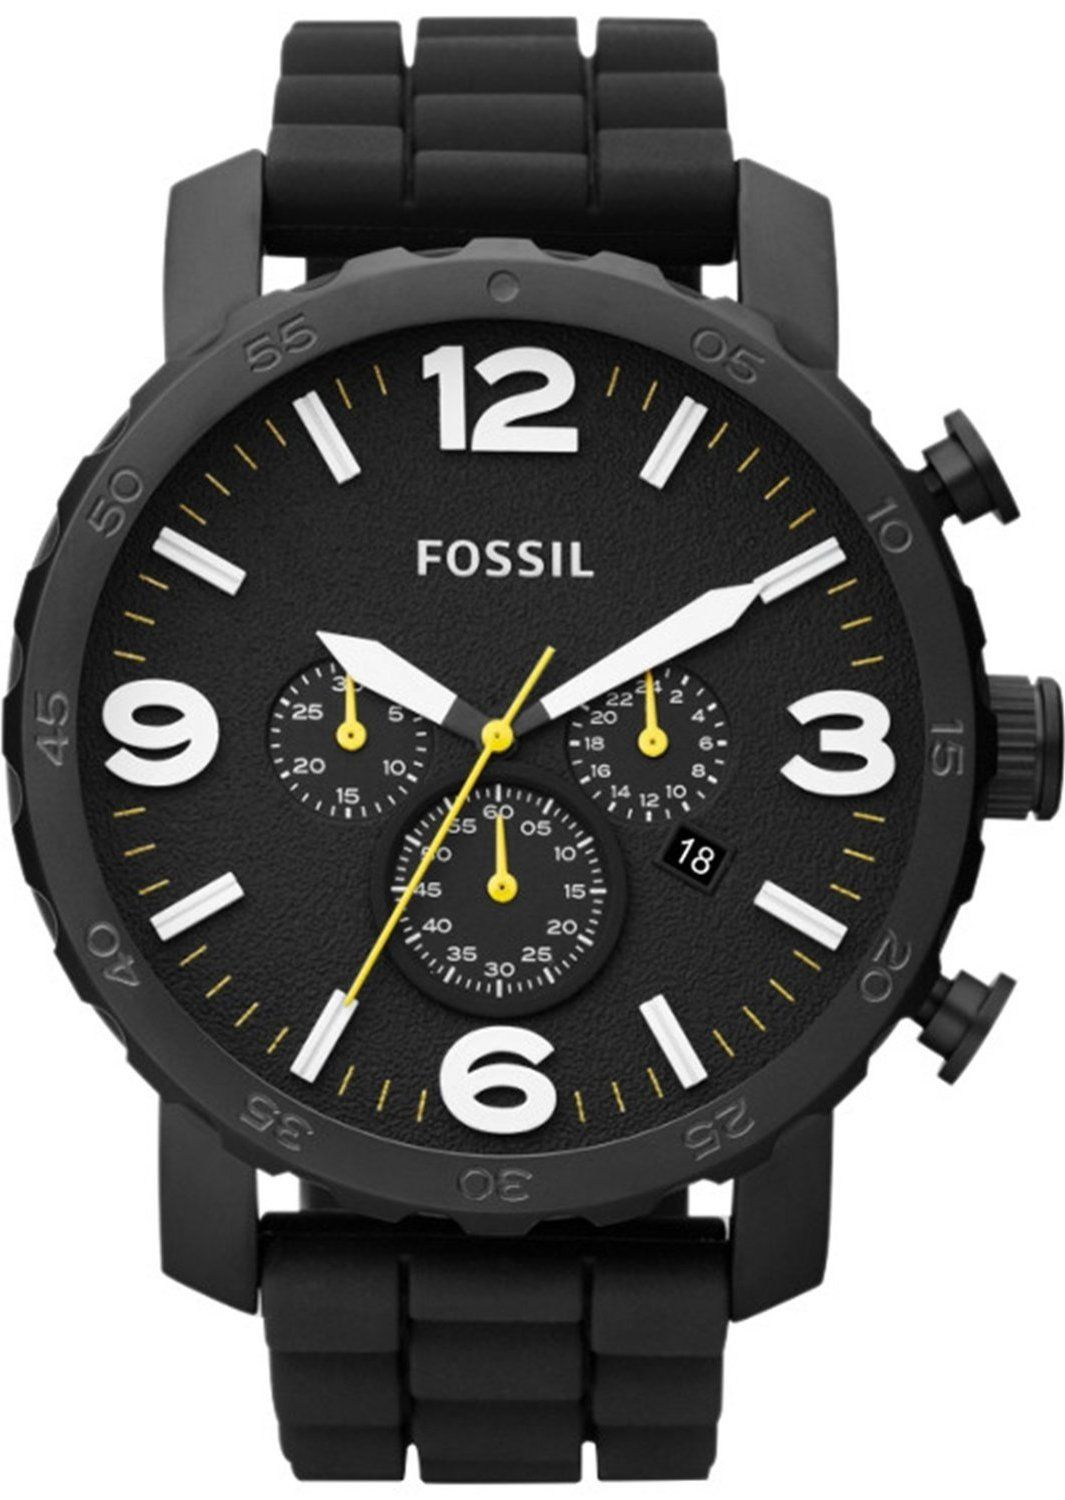 ca5f0b0bf8a Fossil Men s JR1425 Nate Chronograph Black Silicone Watch    107.95   Fossil  Watch Men